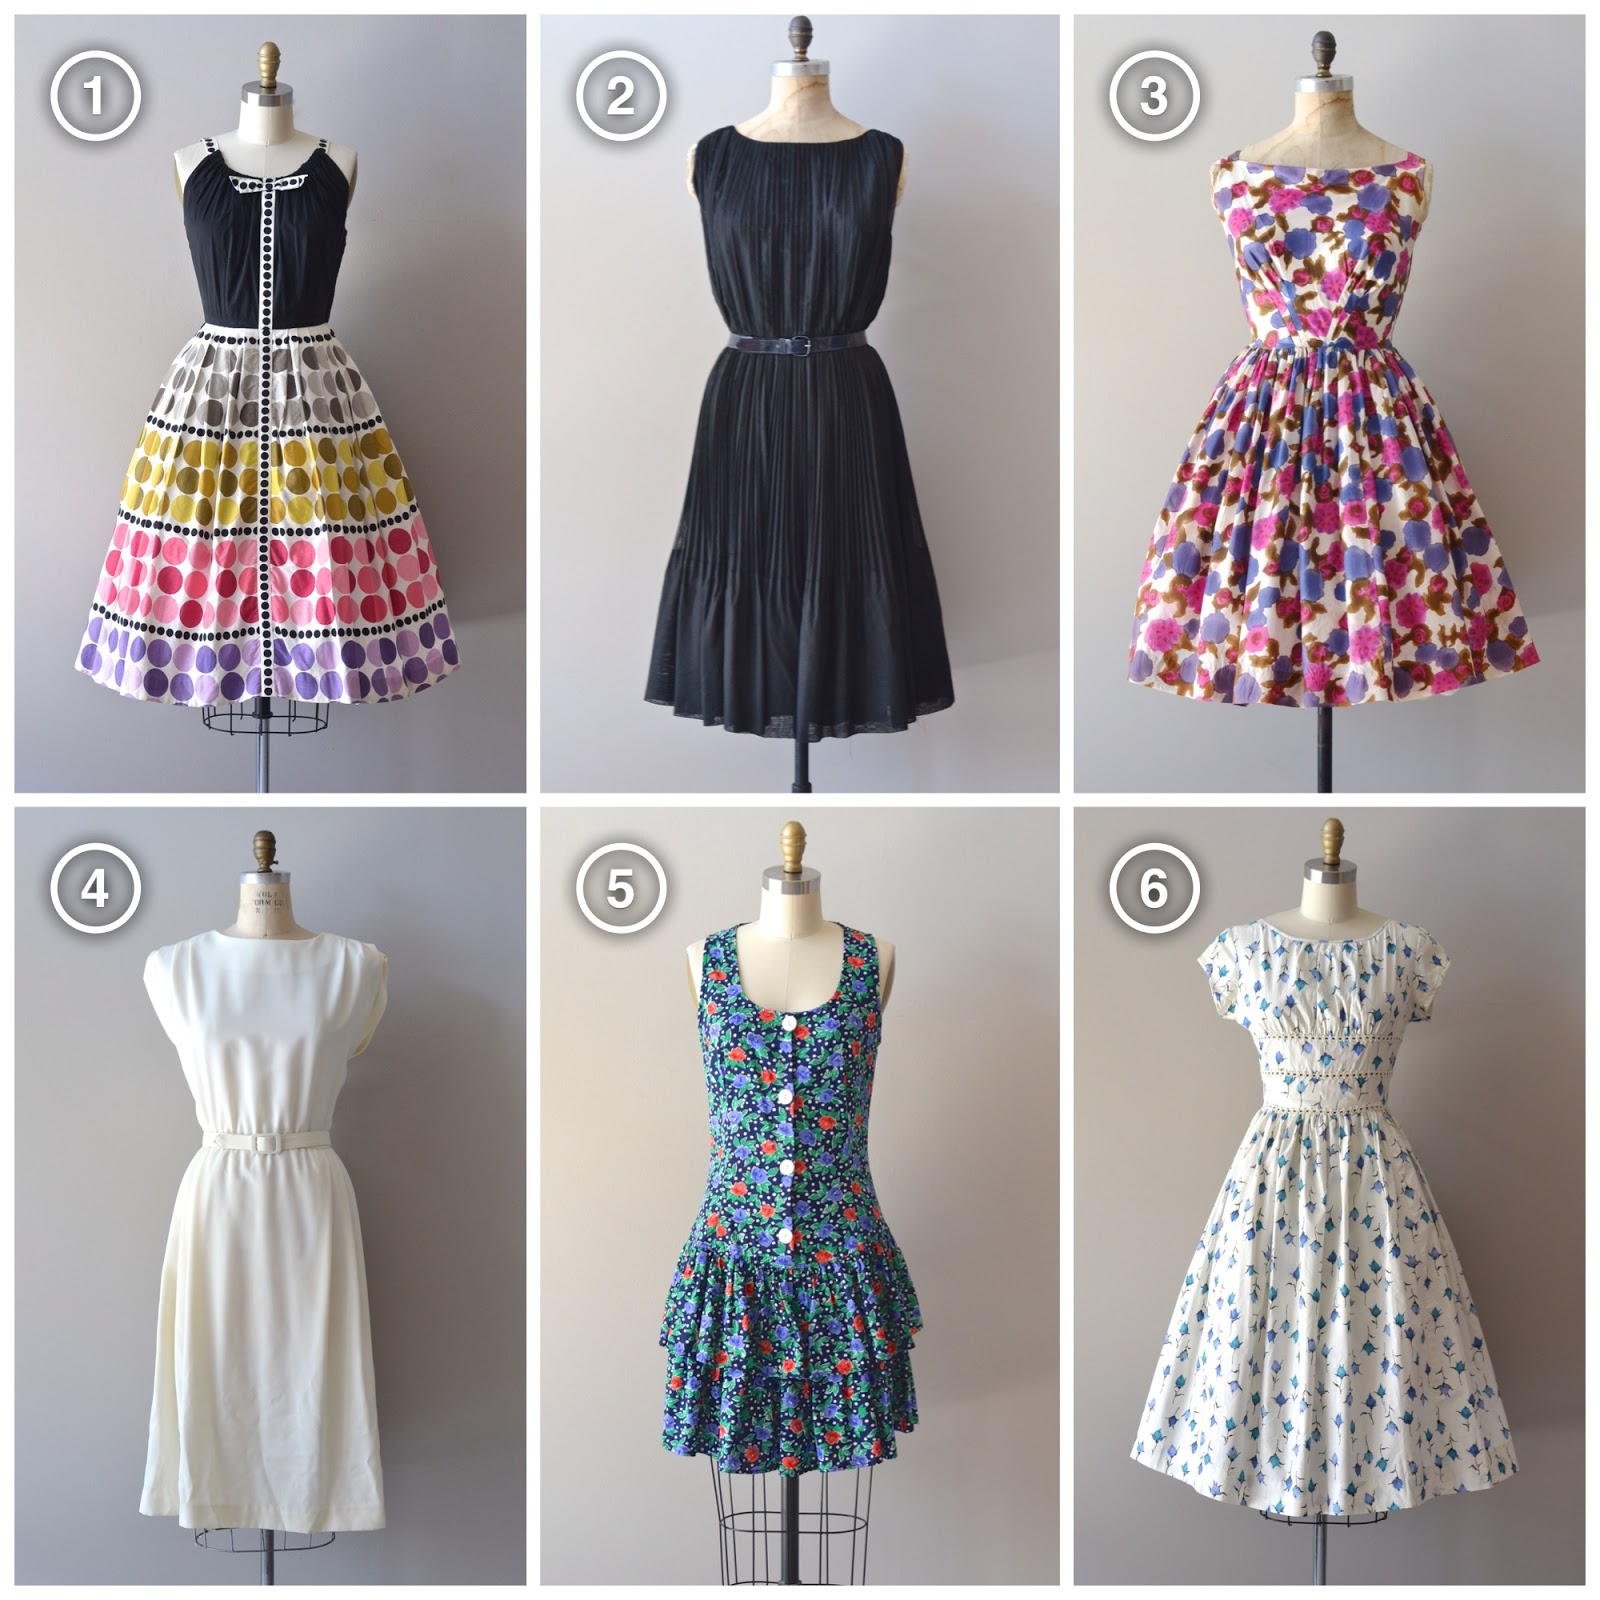 stores that sell vintage clothing - Kids Clothes Zone